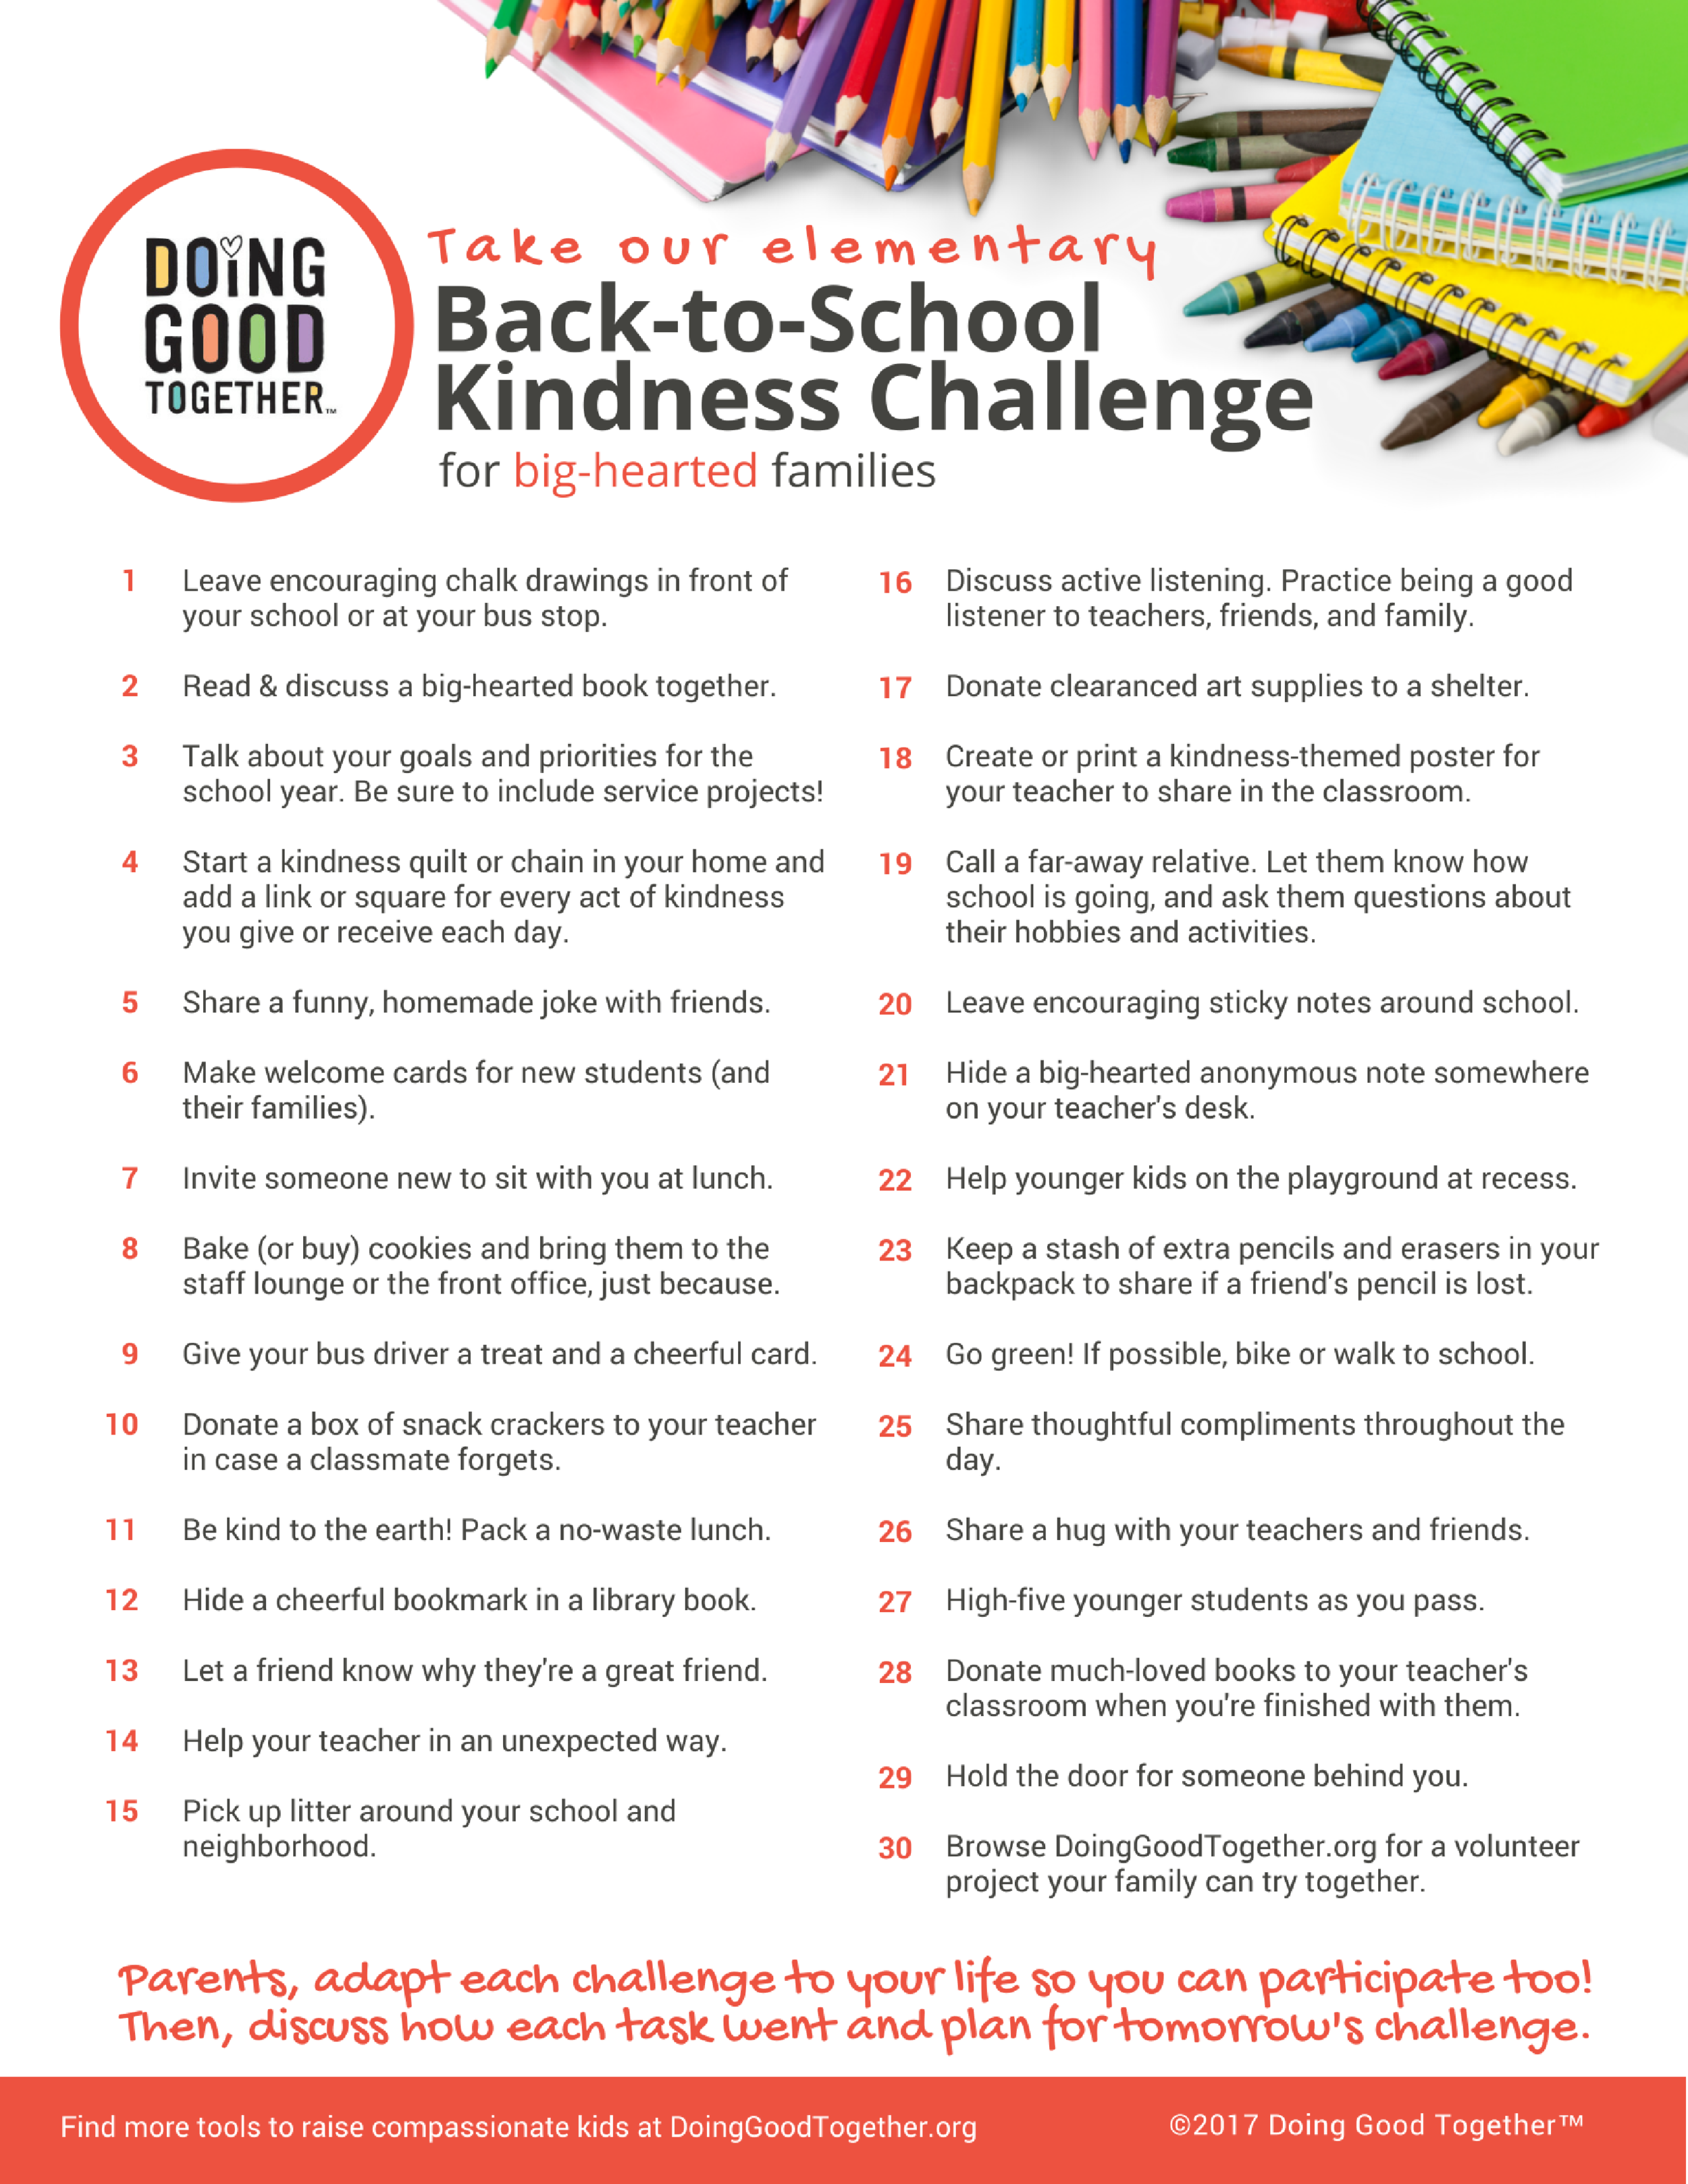 Click to print the elementary challenge.